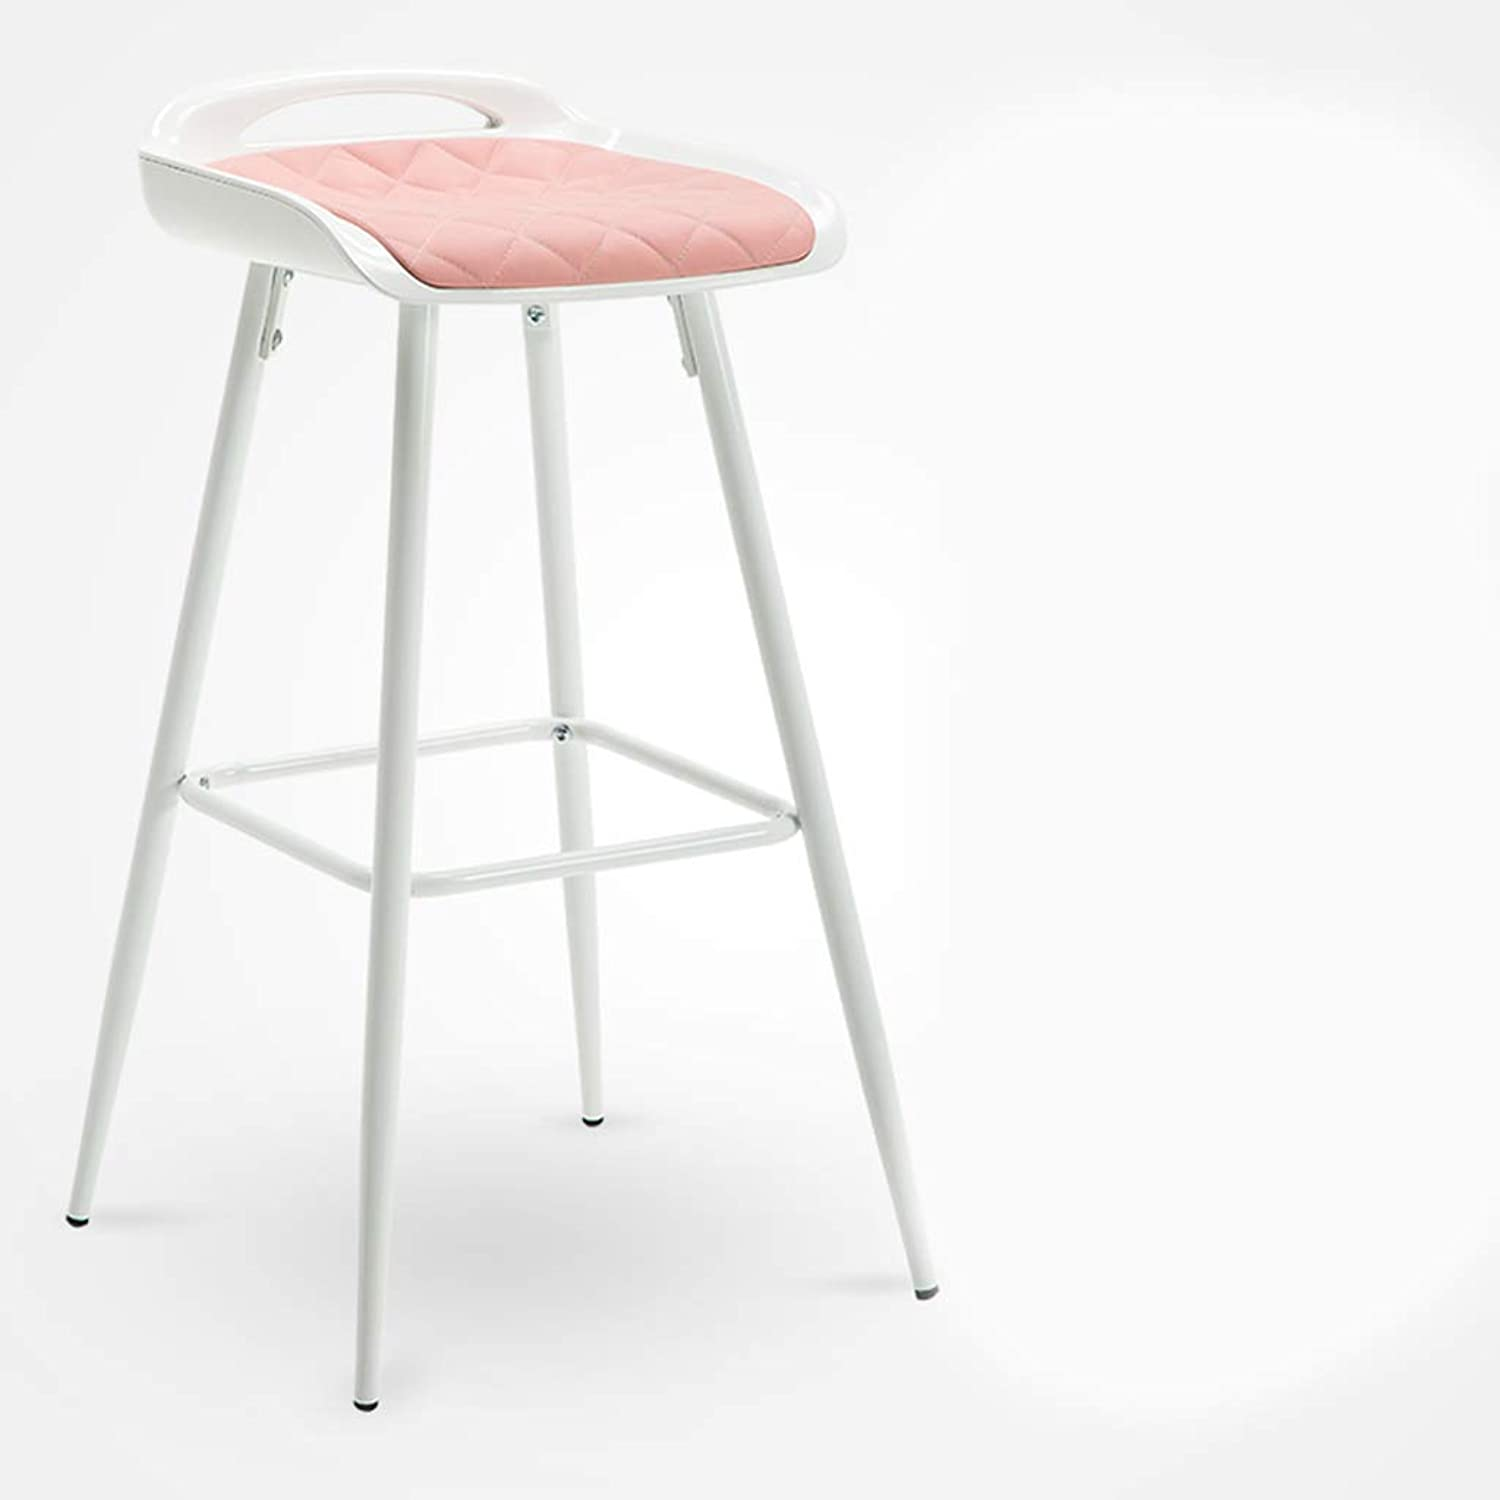 Yan Fei Bar Stool High Stool Chair Bar Stool Wrought Iron Stool Bar Table and Chairs Bar Chair Lounge Chair Front Chair Comfortable Stools (color   A)